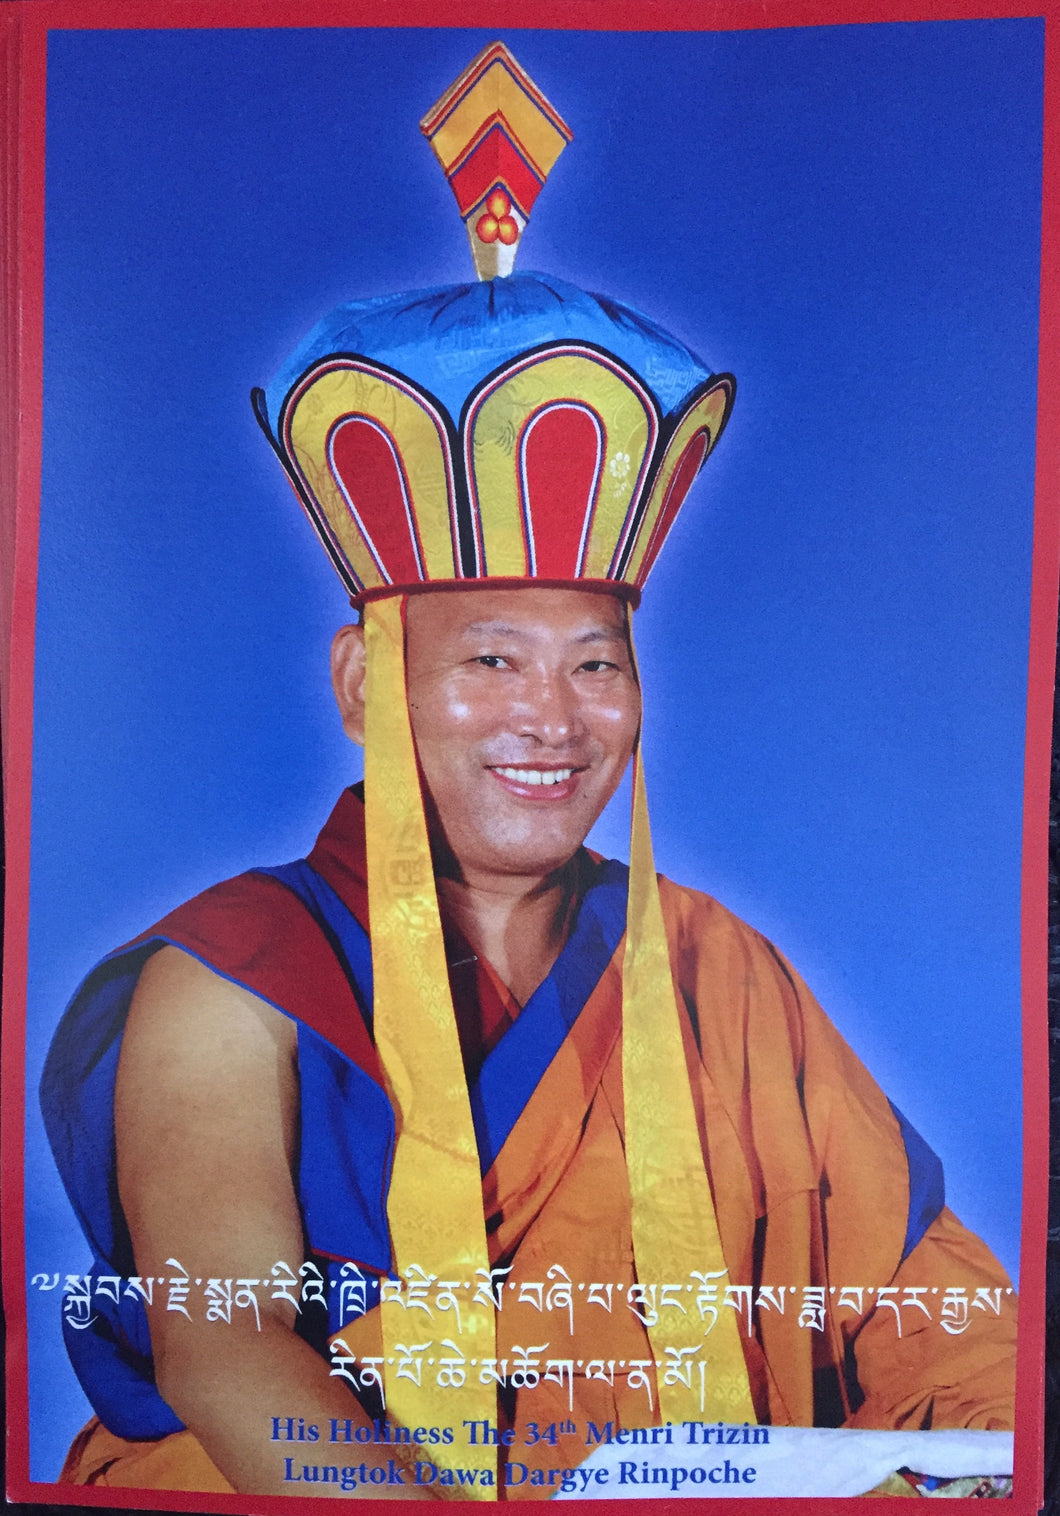 His Holiness 34th Menri Trizin card